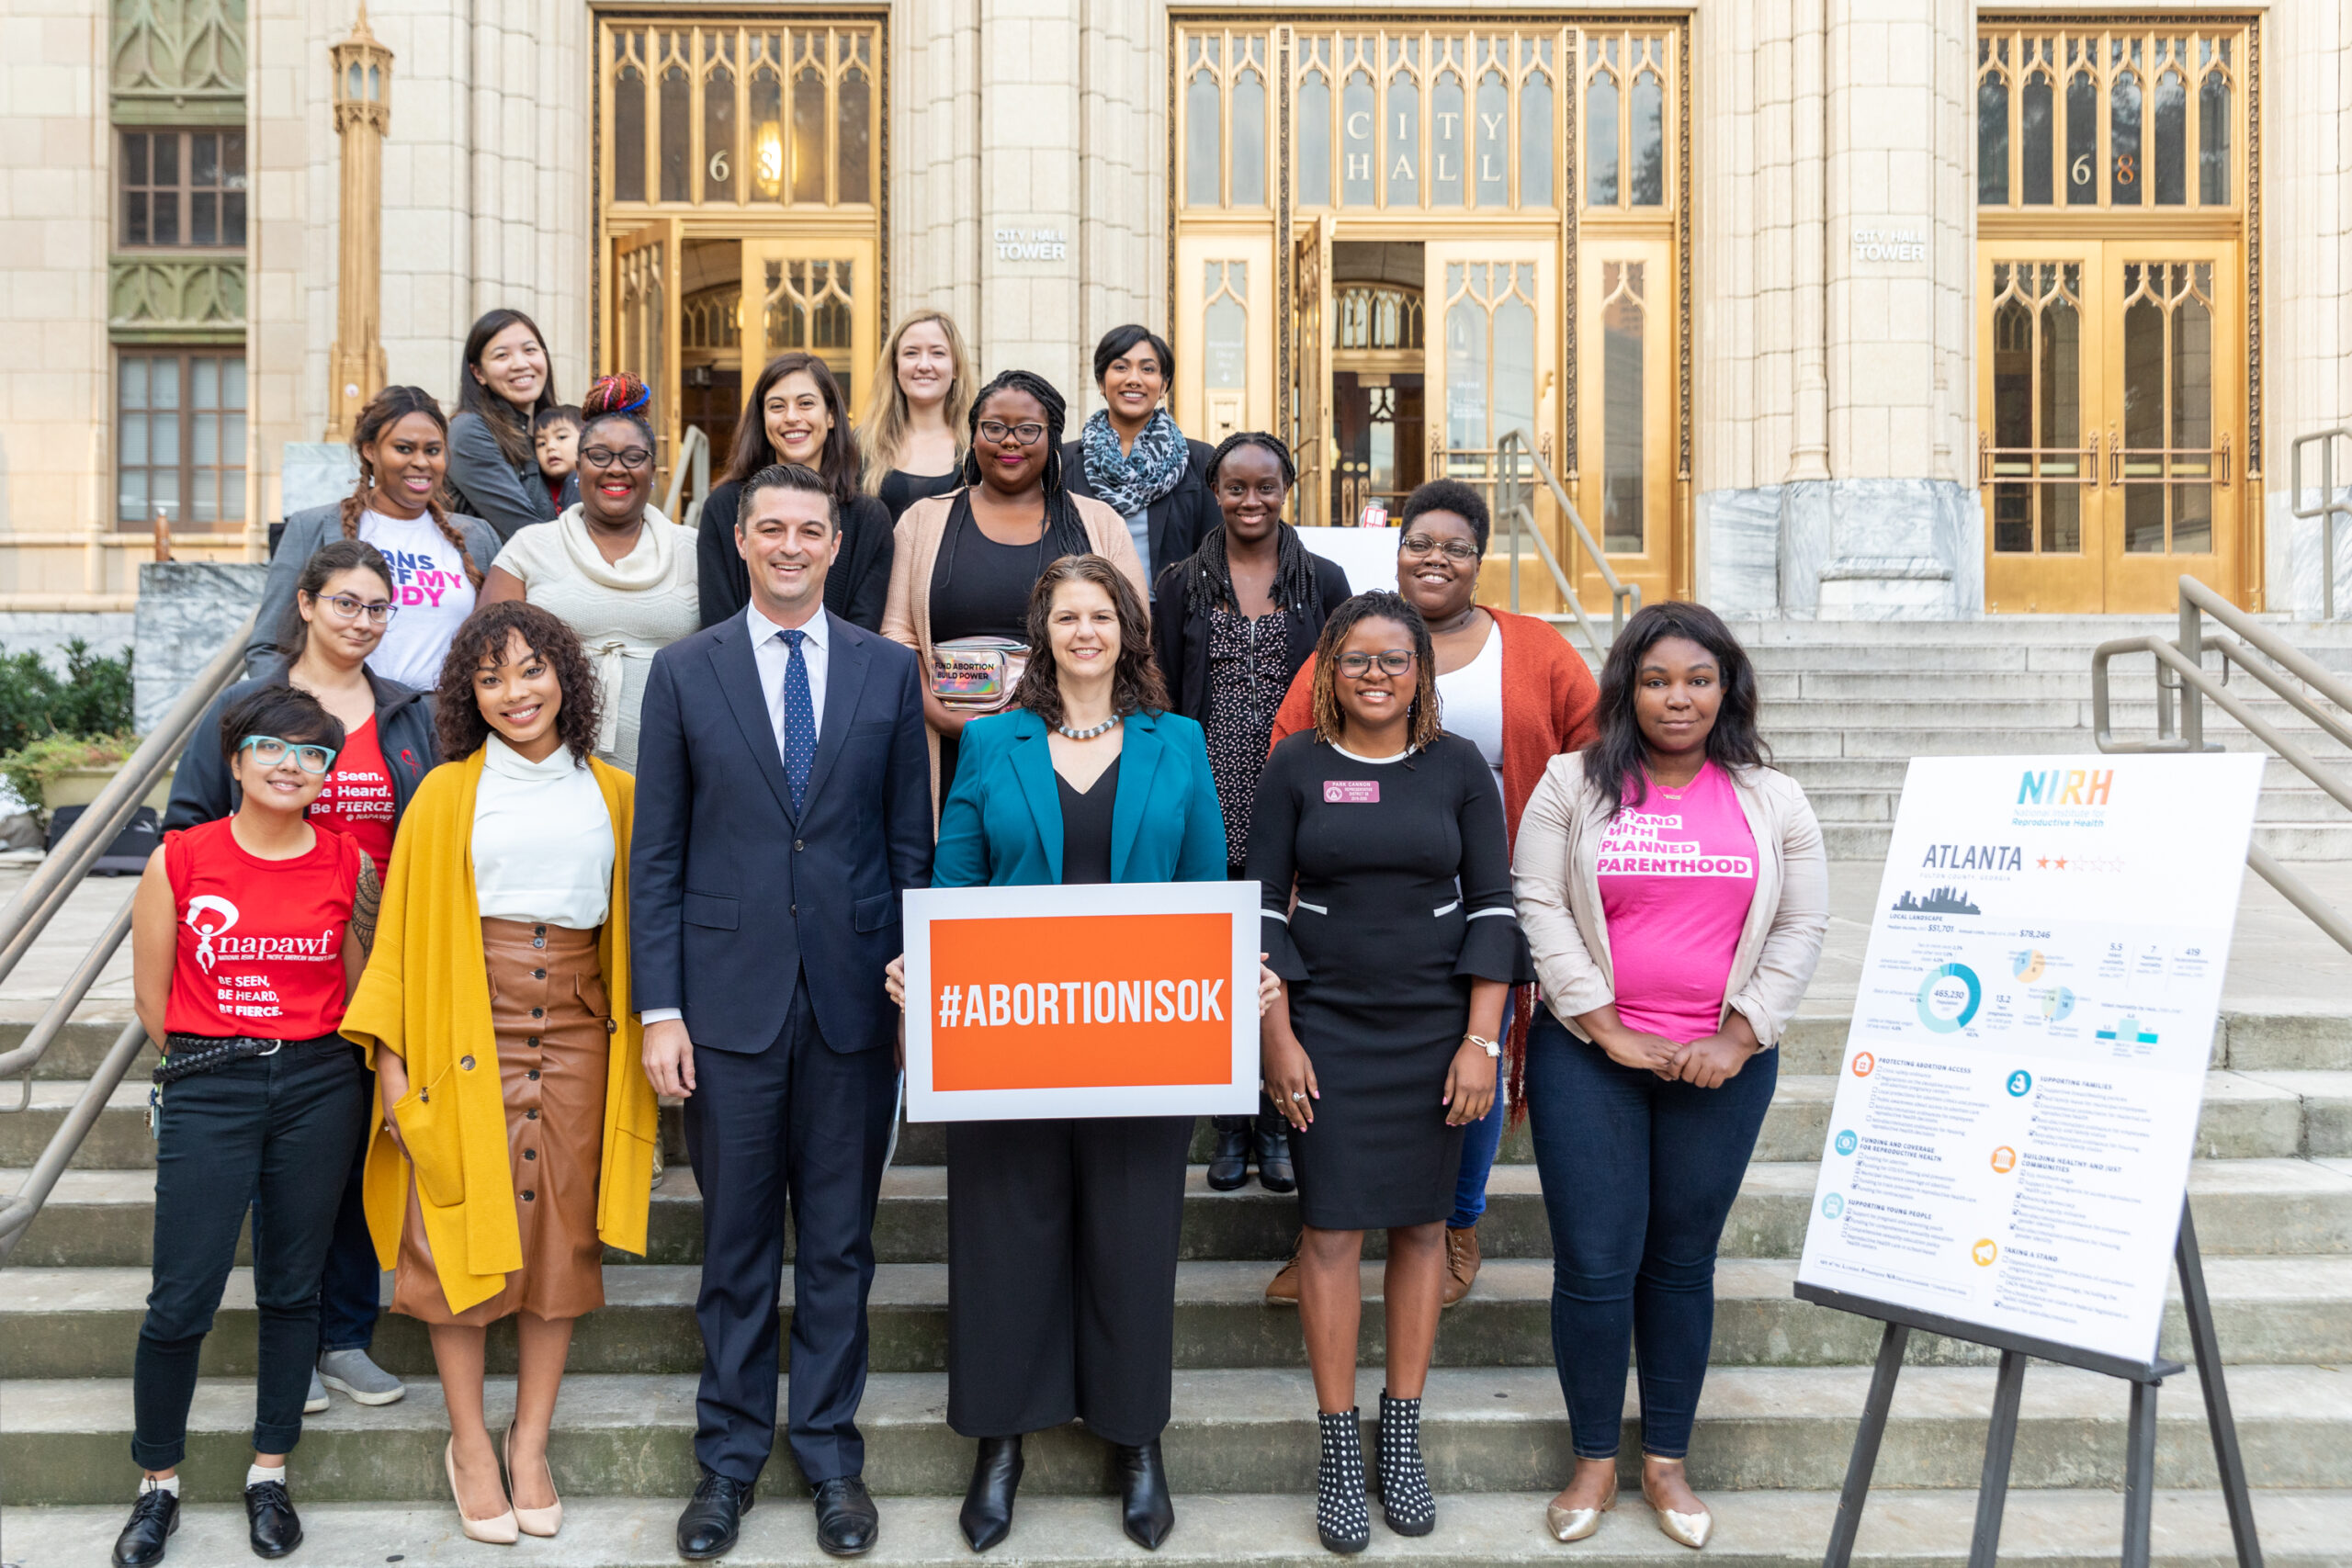 ATLANTA, GA - October 21, 2019: Atlanta Lawmakers, Local Advocates and National Reproductive Rights Group Launch New Report Evaluating 50 U.S. Cities on Efforts to Advance Reproductive Health, Rights and Justice